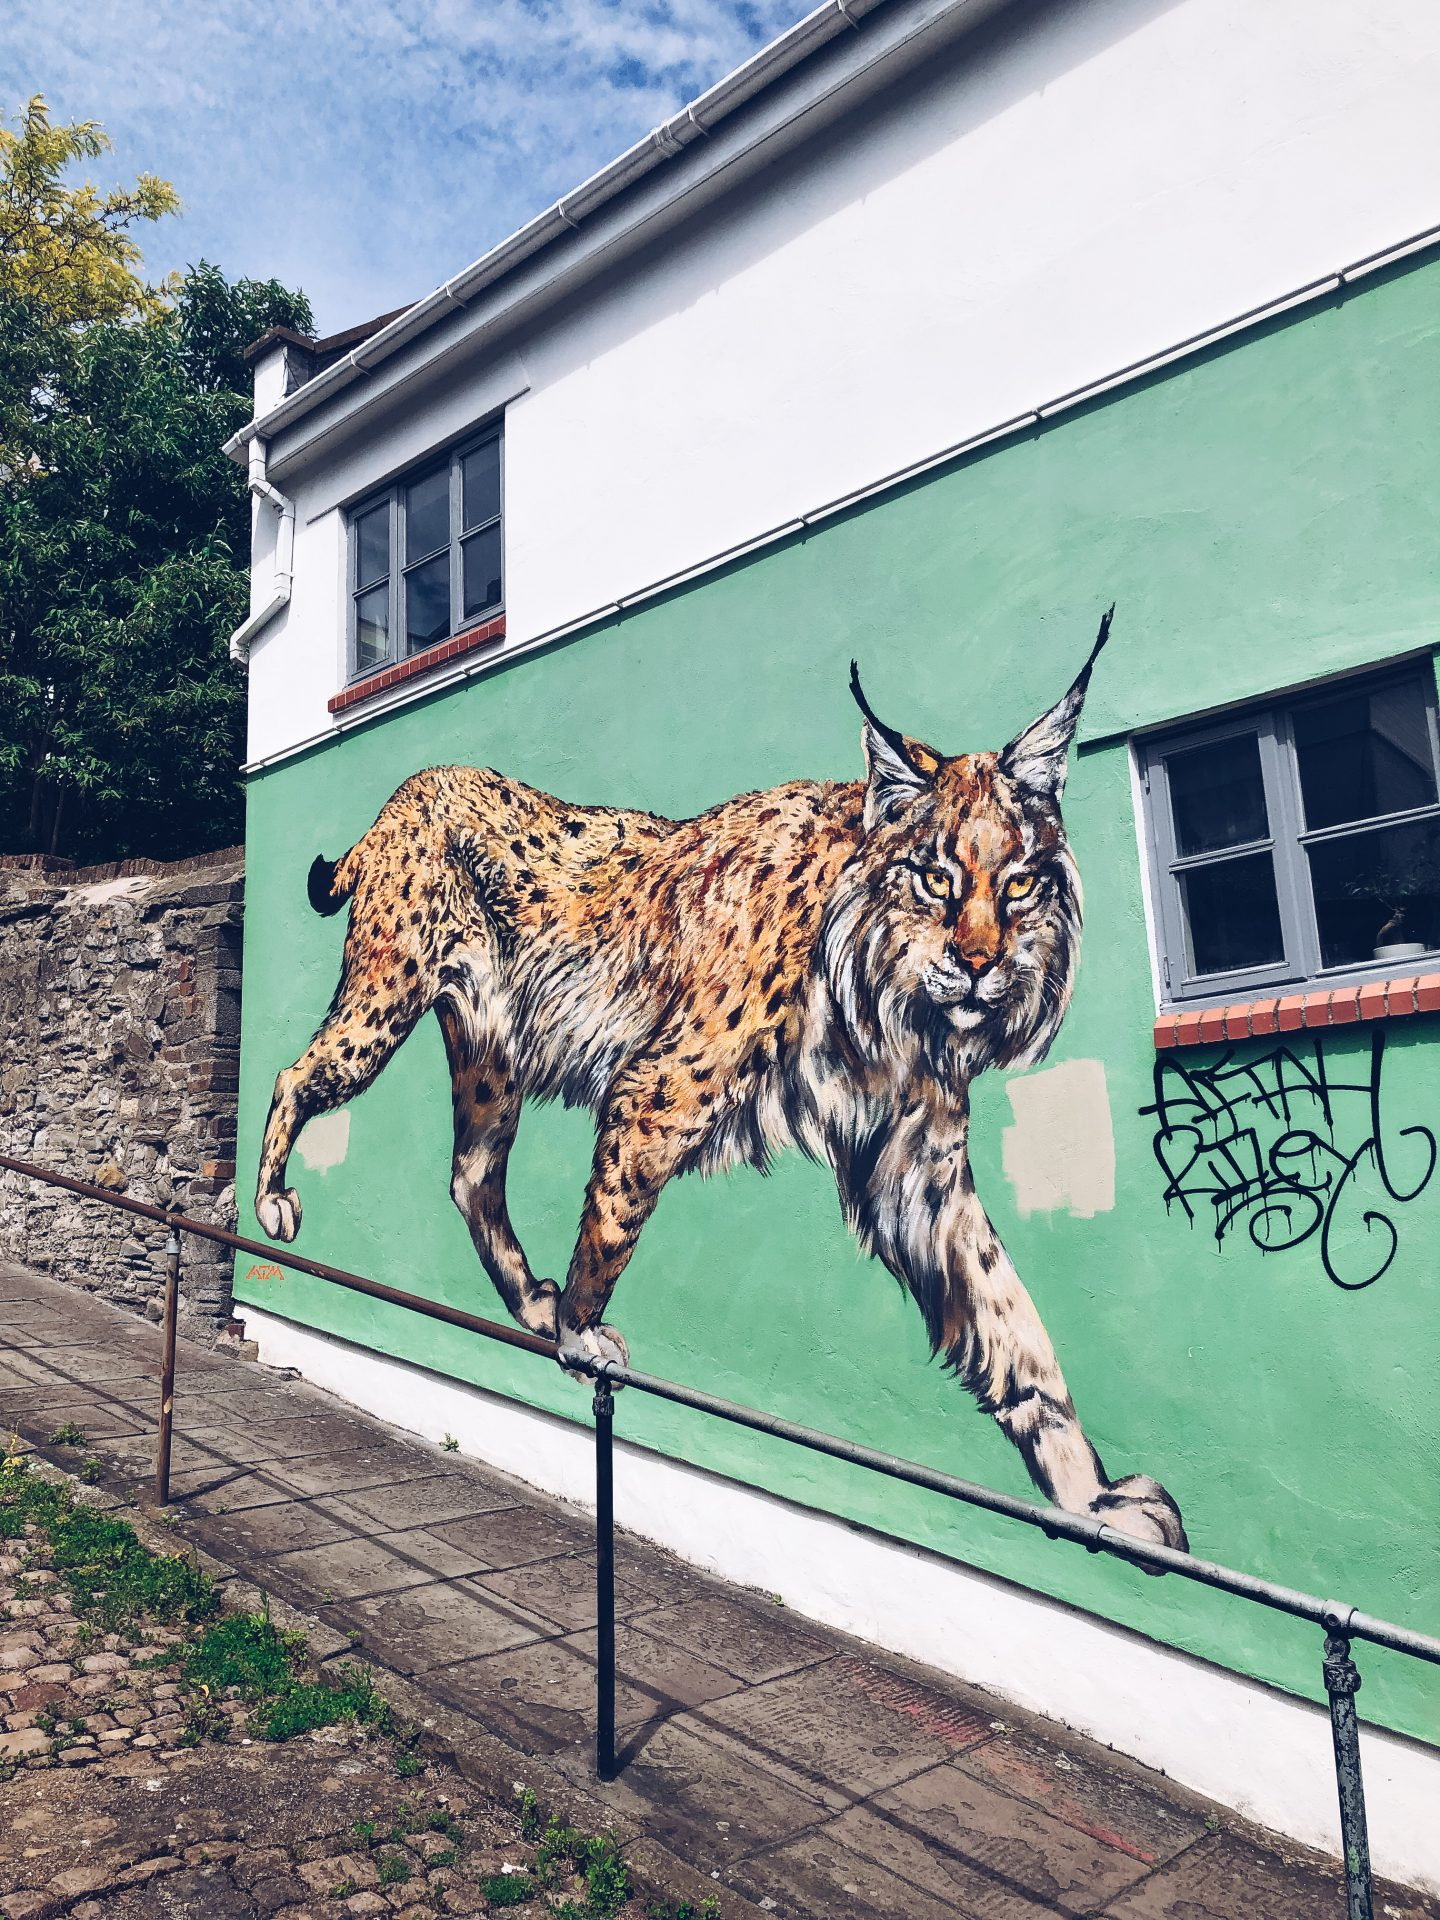 ATM's lynx mural is on a green background on the side of a house